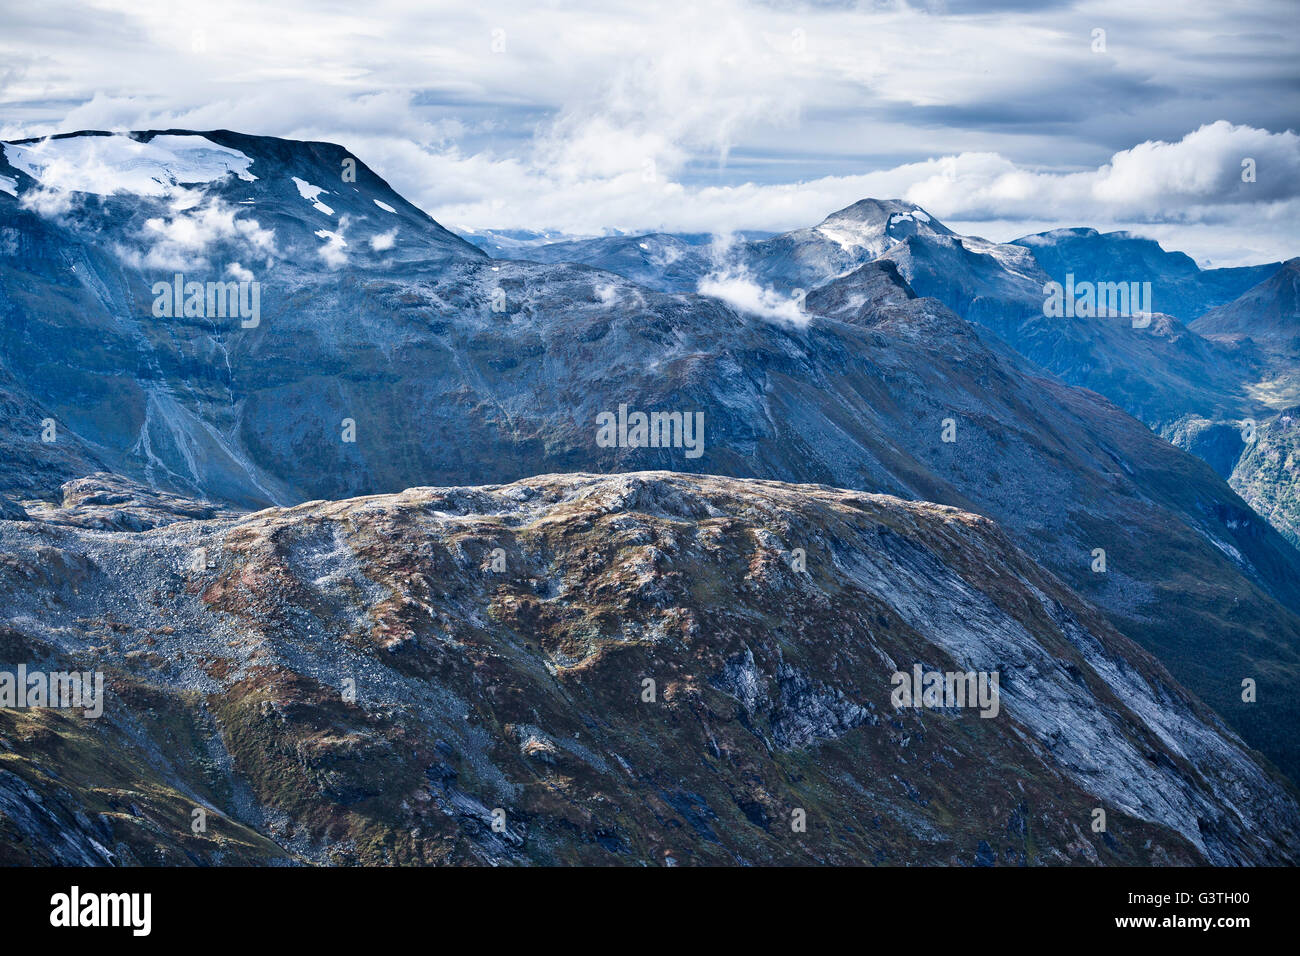 Norway, More og Romsdal, Sunnmore, View of mountainous landscape - Stock Image